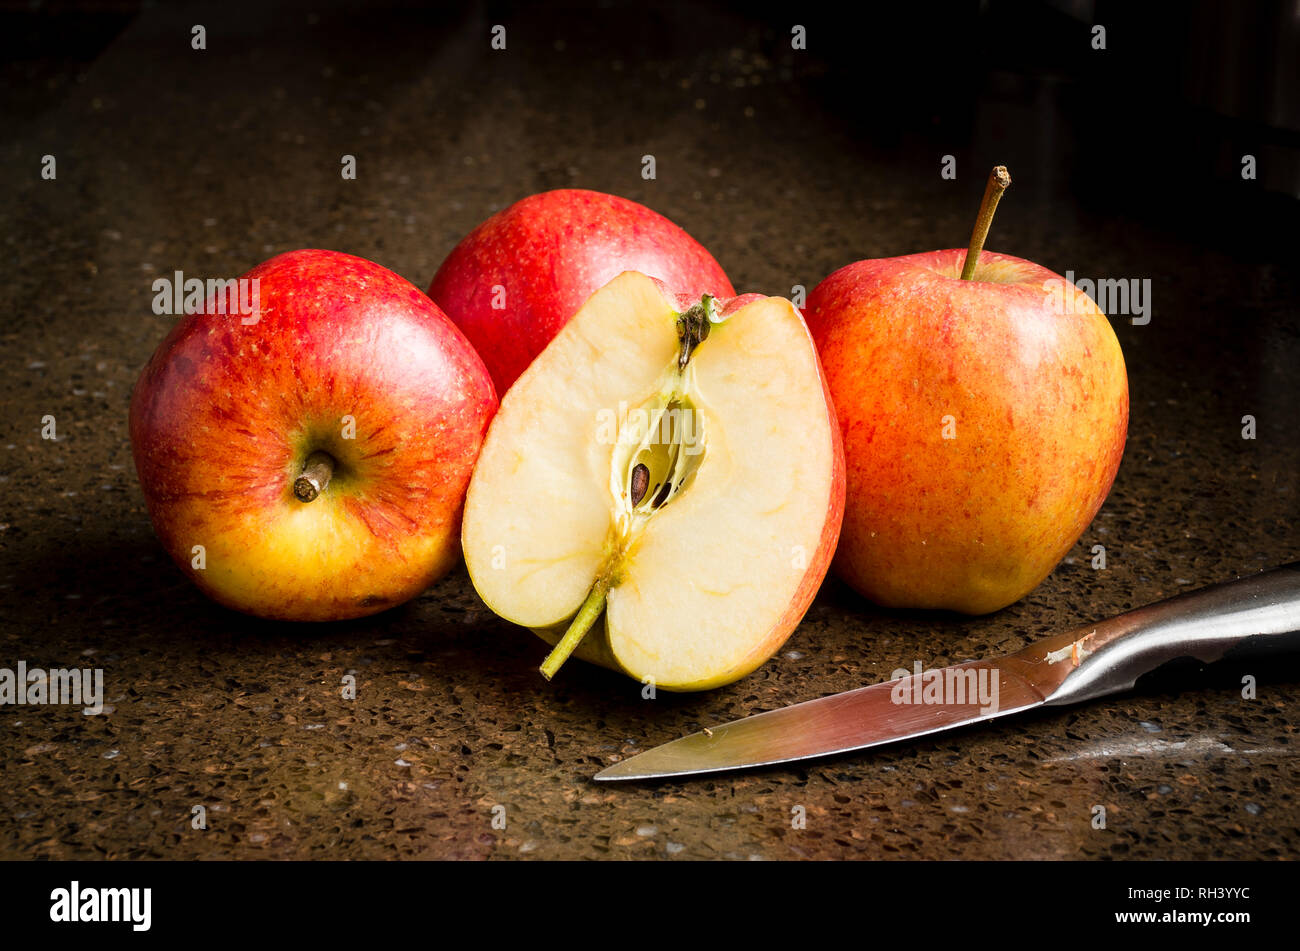 Best of British Daliclass eating apples ready for consumption in the winter in UK - Stock Image